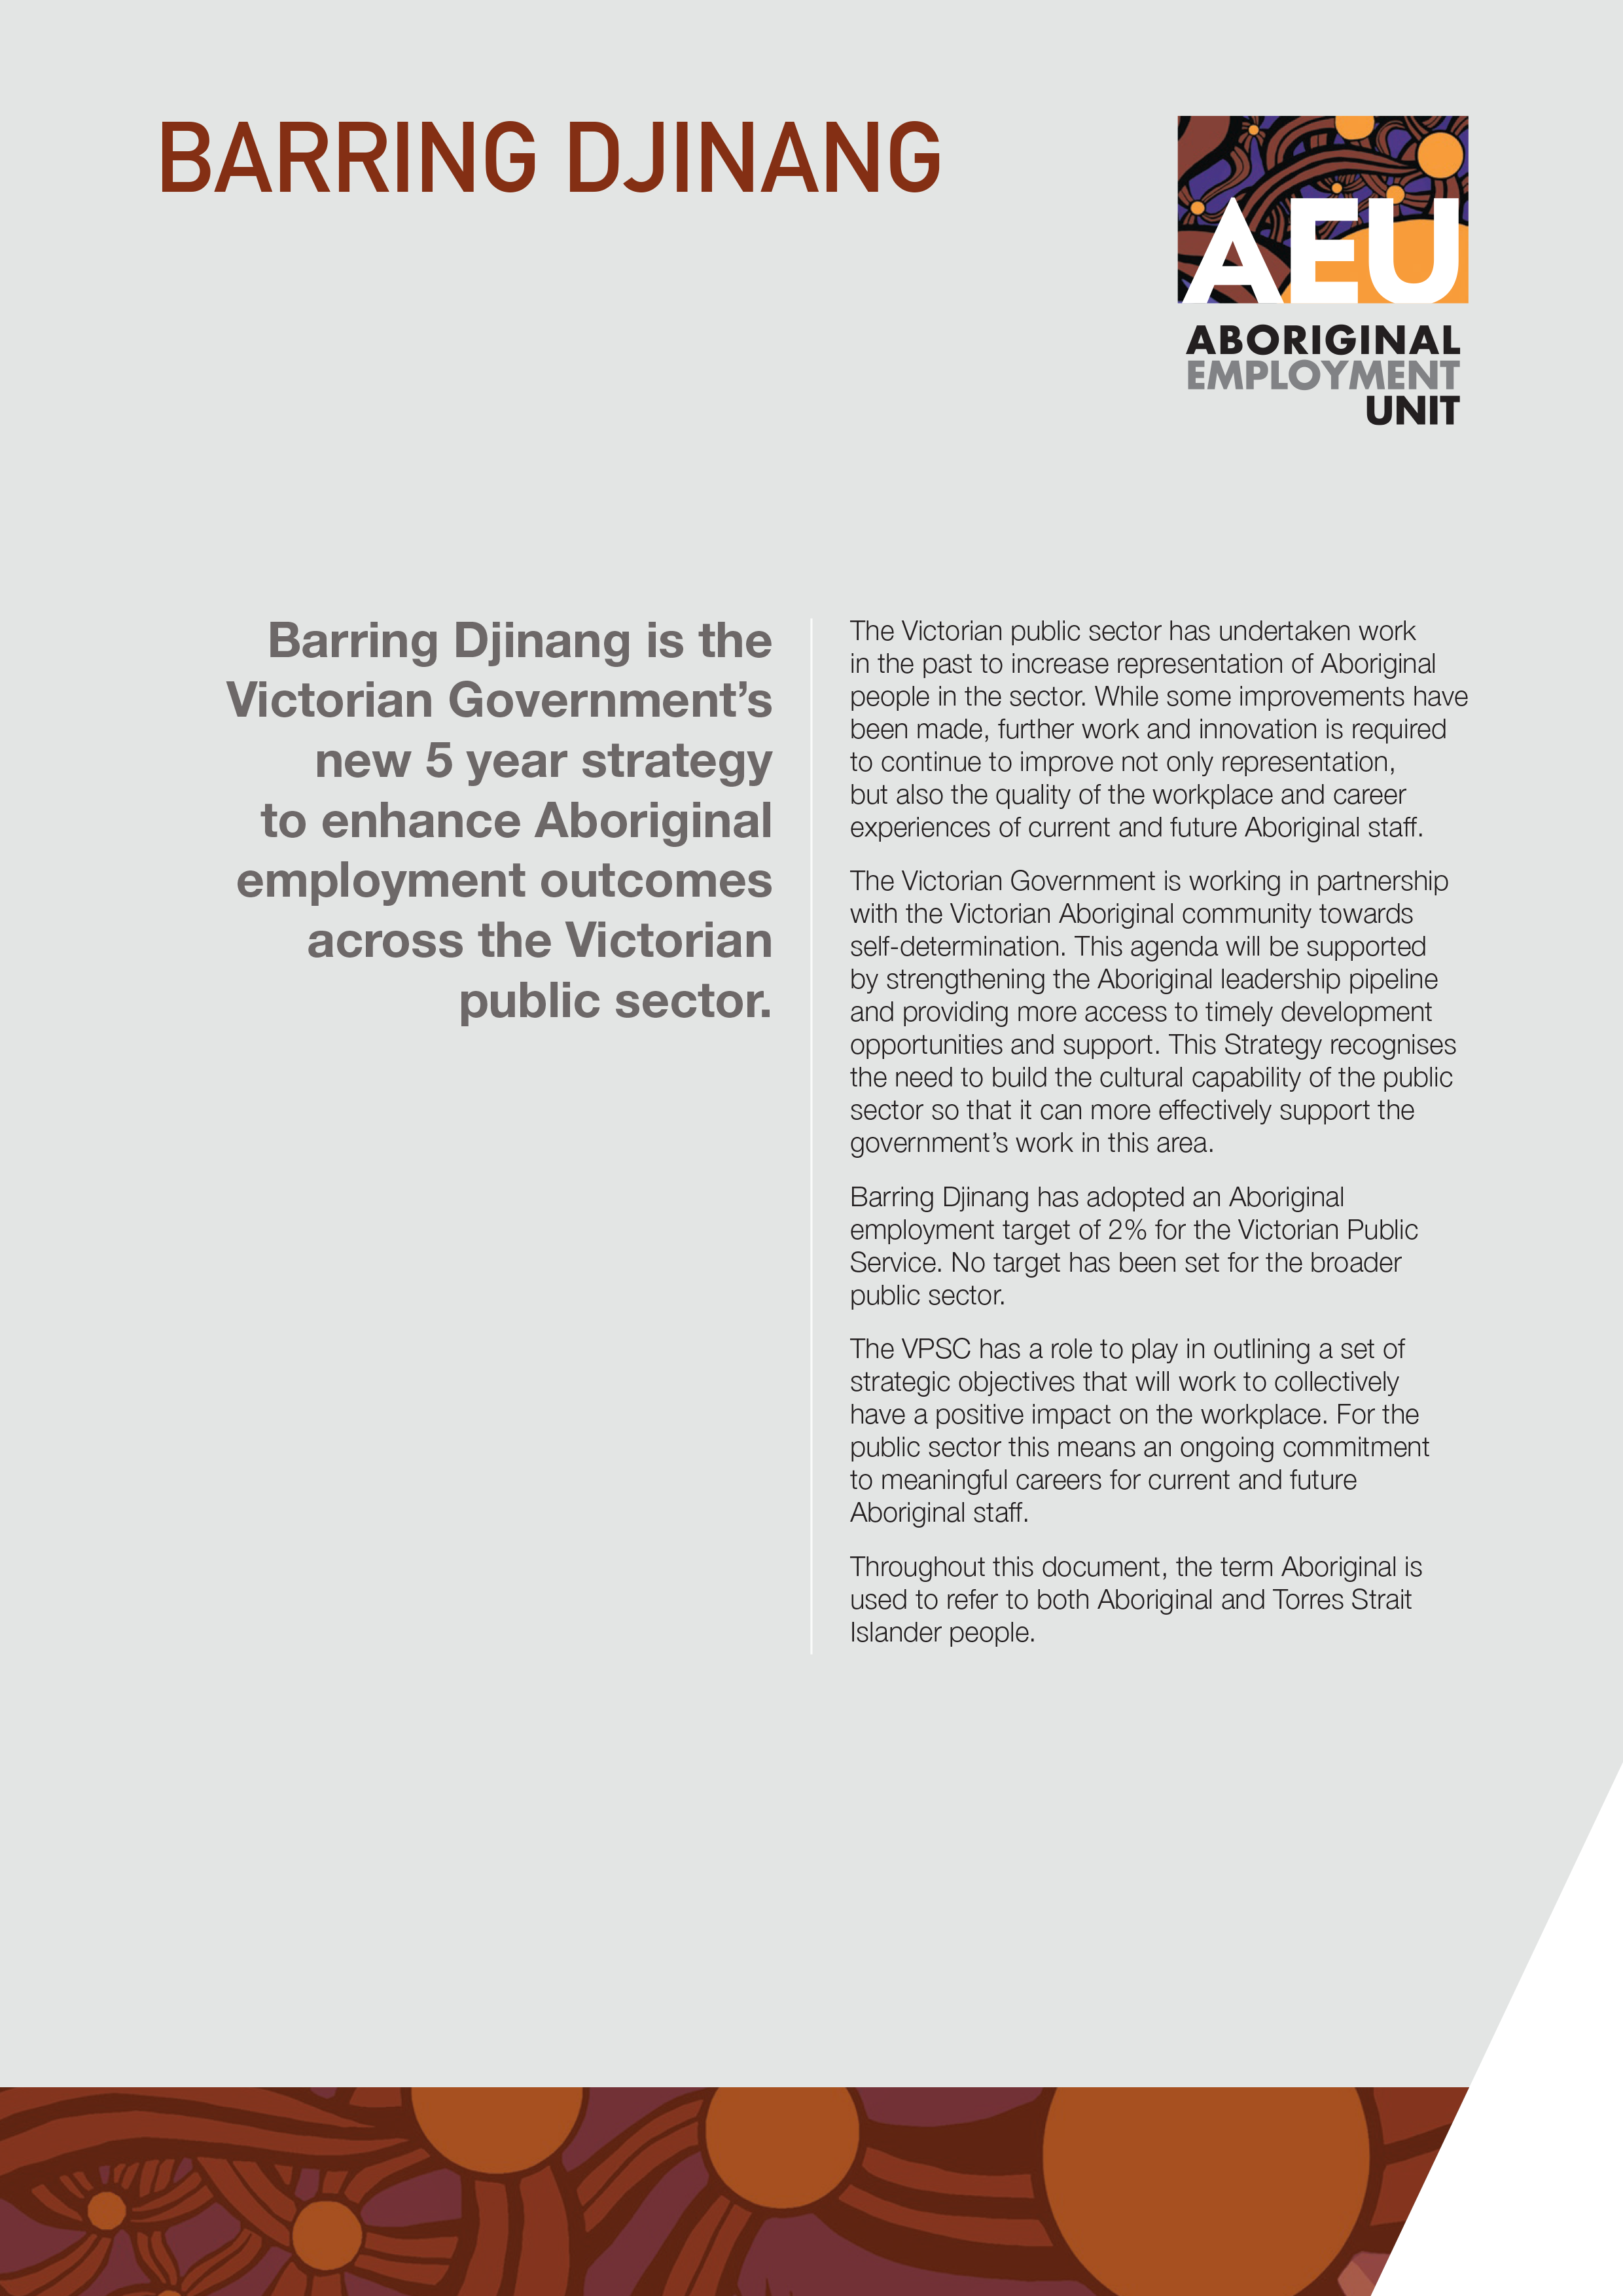 Section 2 of the Barring Djinang launch brochure